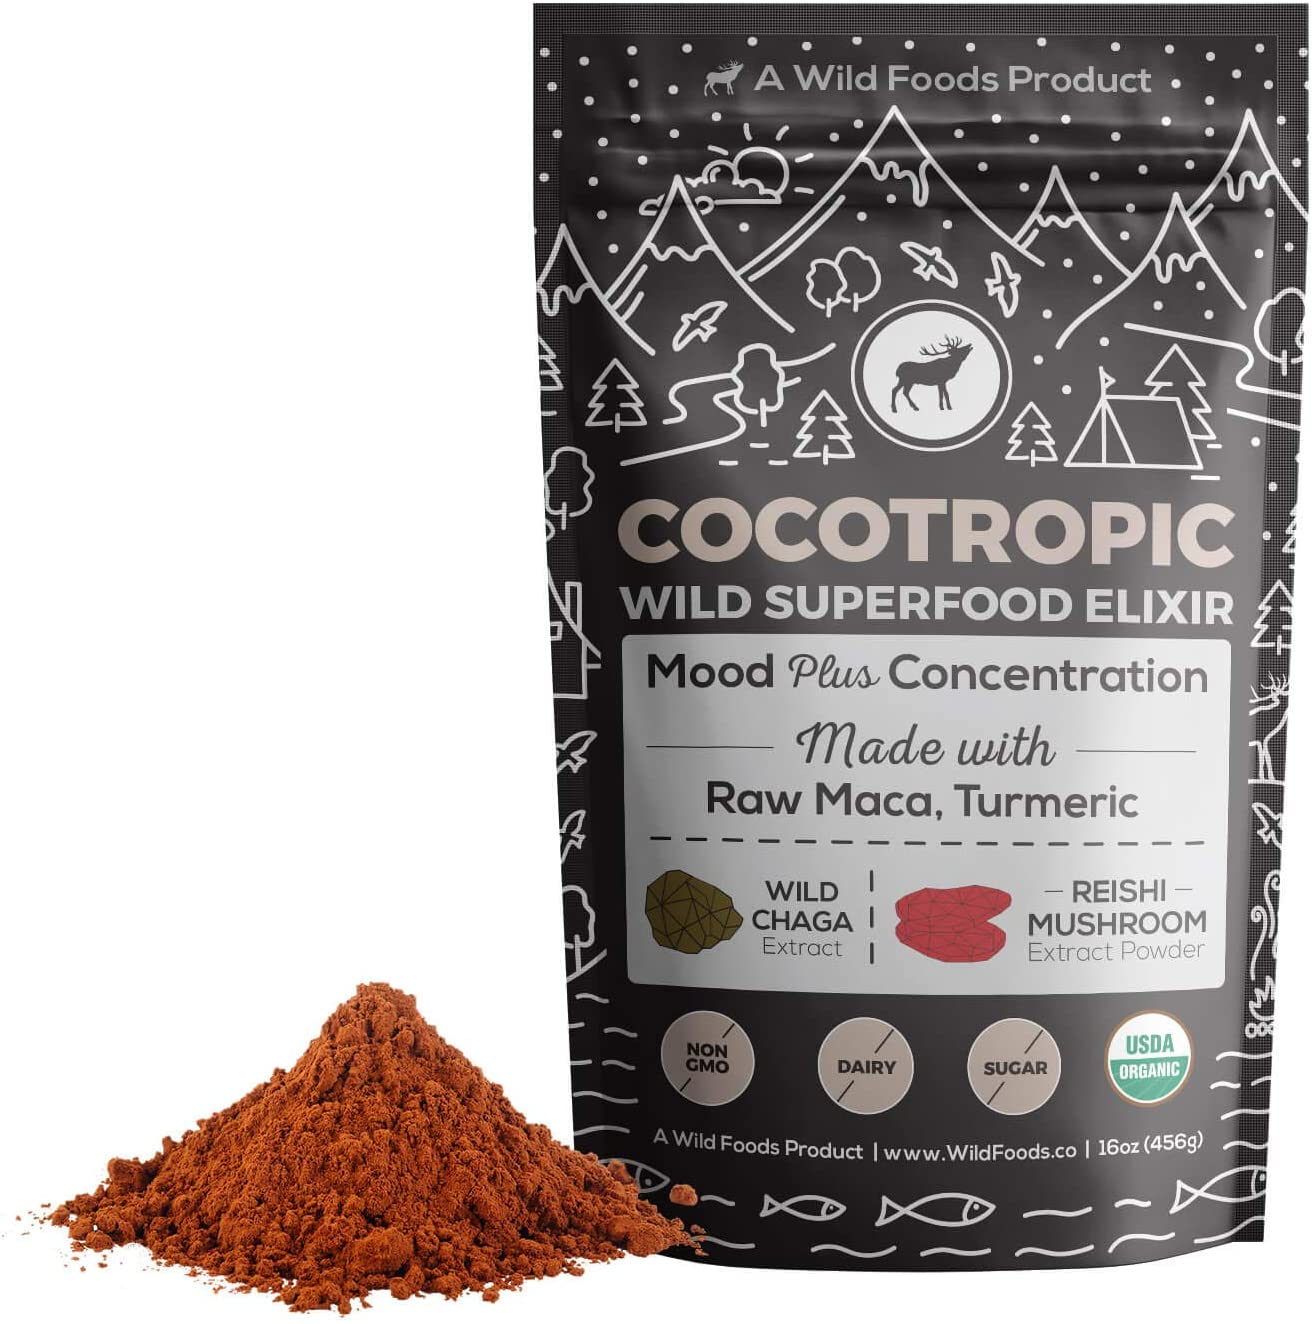 Wild Cocotropic Mushroom Drink Elixir with Cocoa, Reishi, Chaga Extract, Maca, Turmeric | Hot Nootropic Brain and Focus Mix, Add to Smoothies, Shakes, Coffee (16 Ounce)